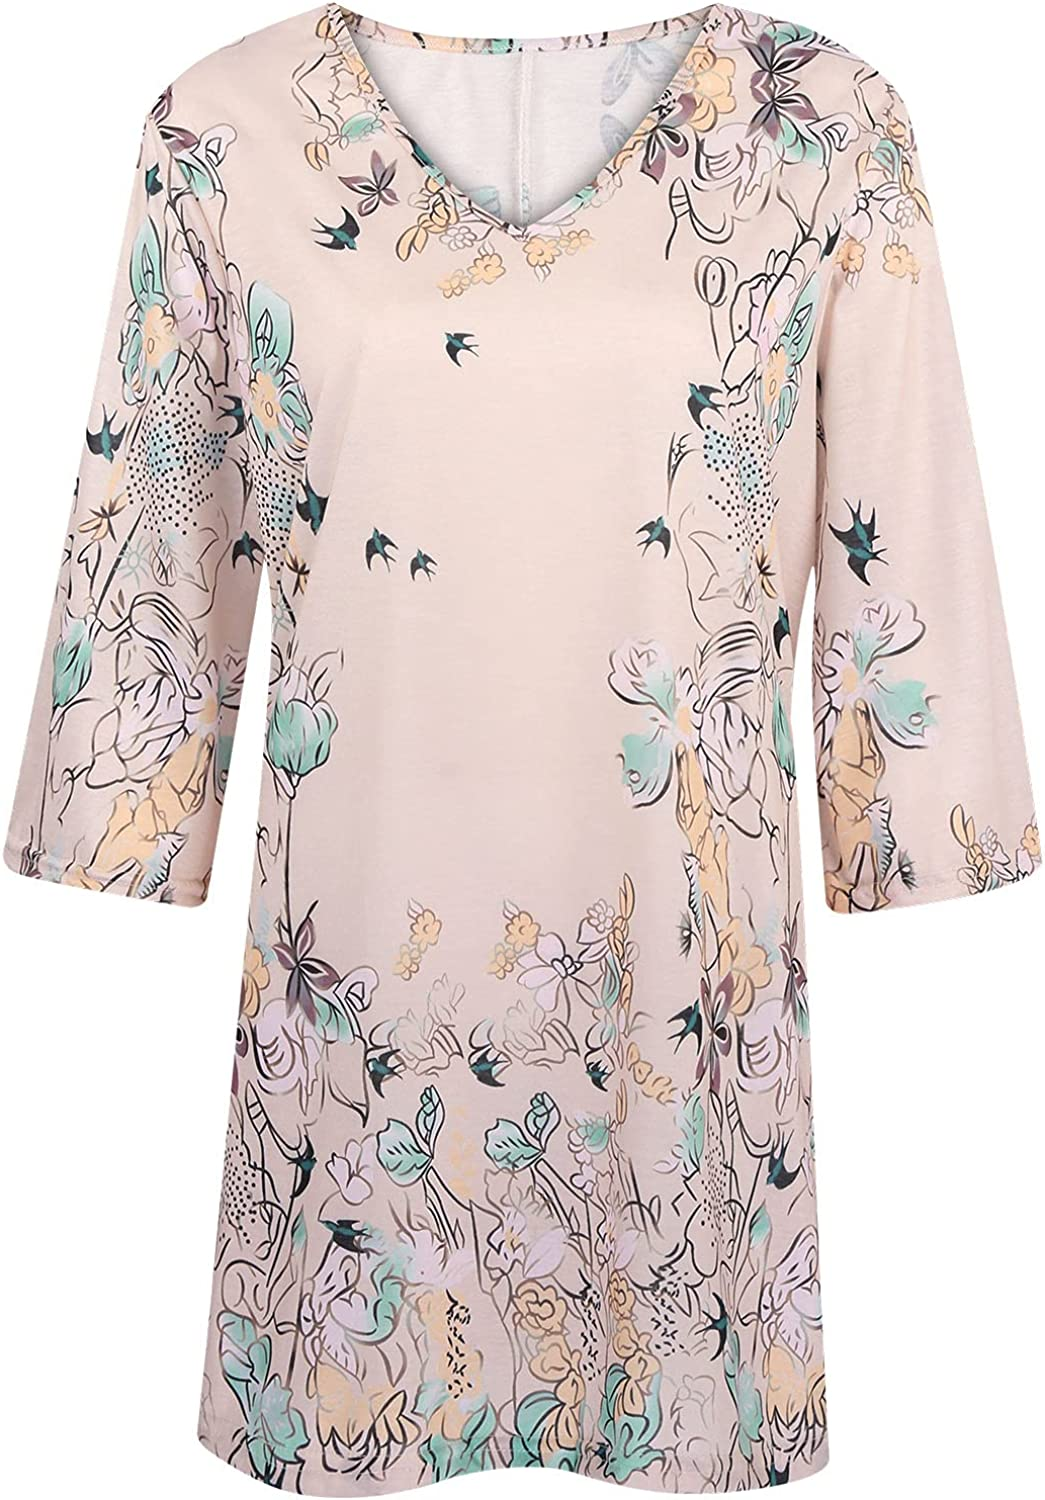 Akklian 3/4 Sleeve Shirts for Women Fall Casual Floral Printed Sexy V-Neck Tee Loose Oversized Tunic Tops Blouse T Shirts